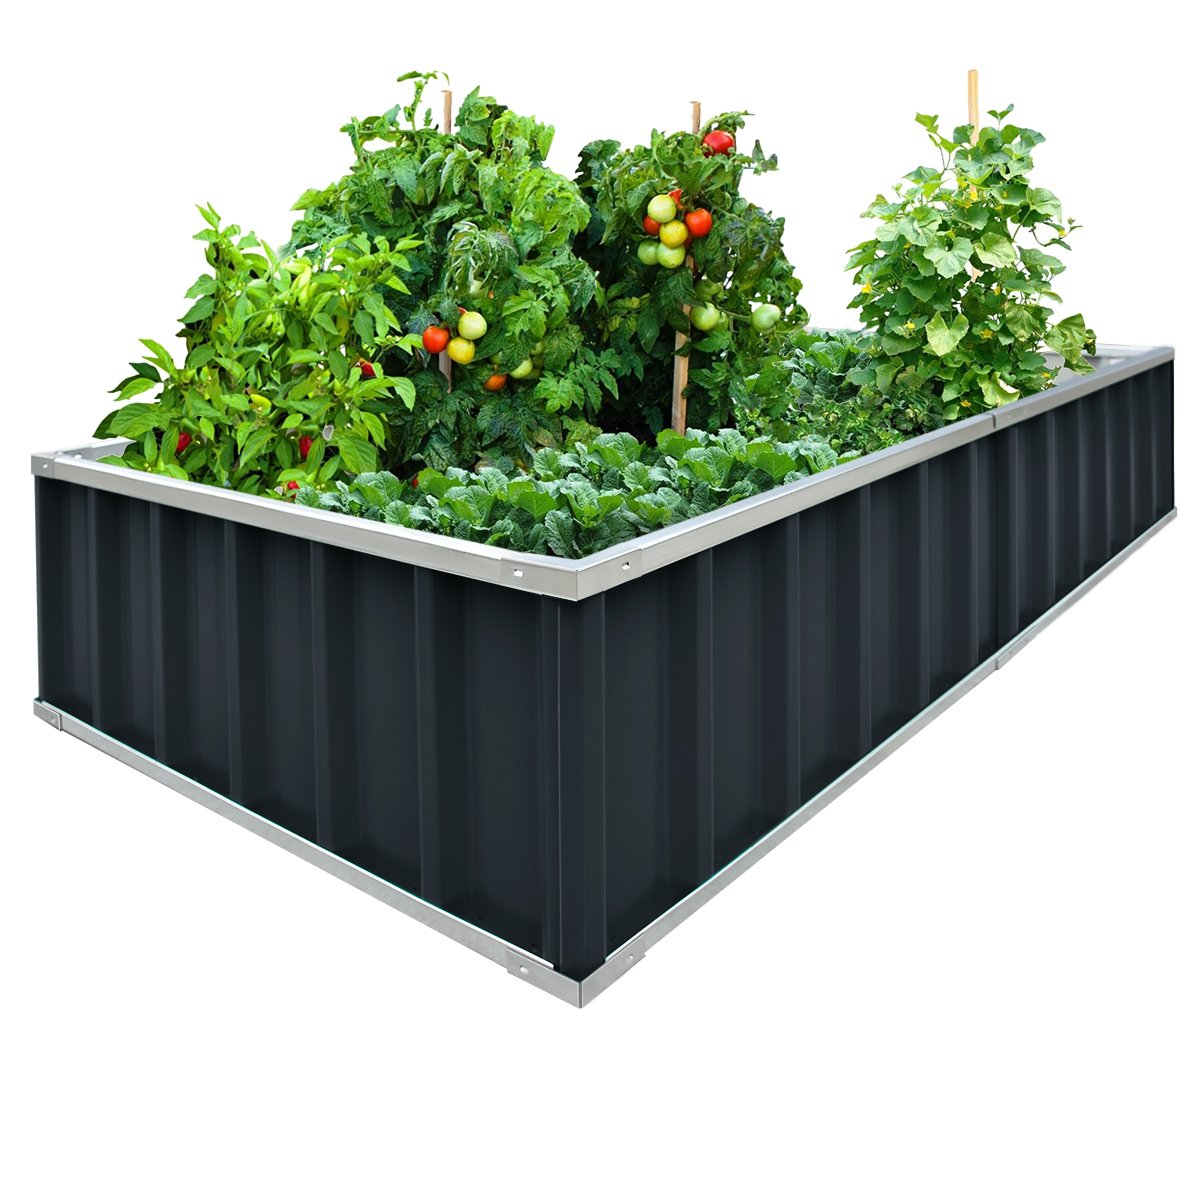 Extra-thick 2-Ply Reinforced Card Frame Raised Garden Bed Kingbird Galvanized Steel Metal Planter Kit Box Grey 68''x 36''x 12'' Including 8pcs T-types Tag a Pair of Gloves by Kingbird